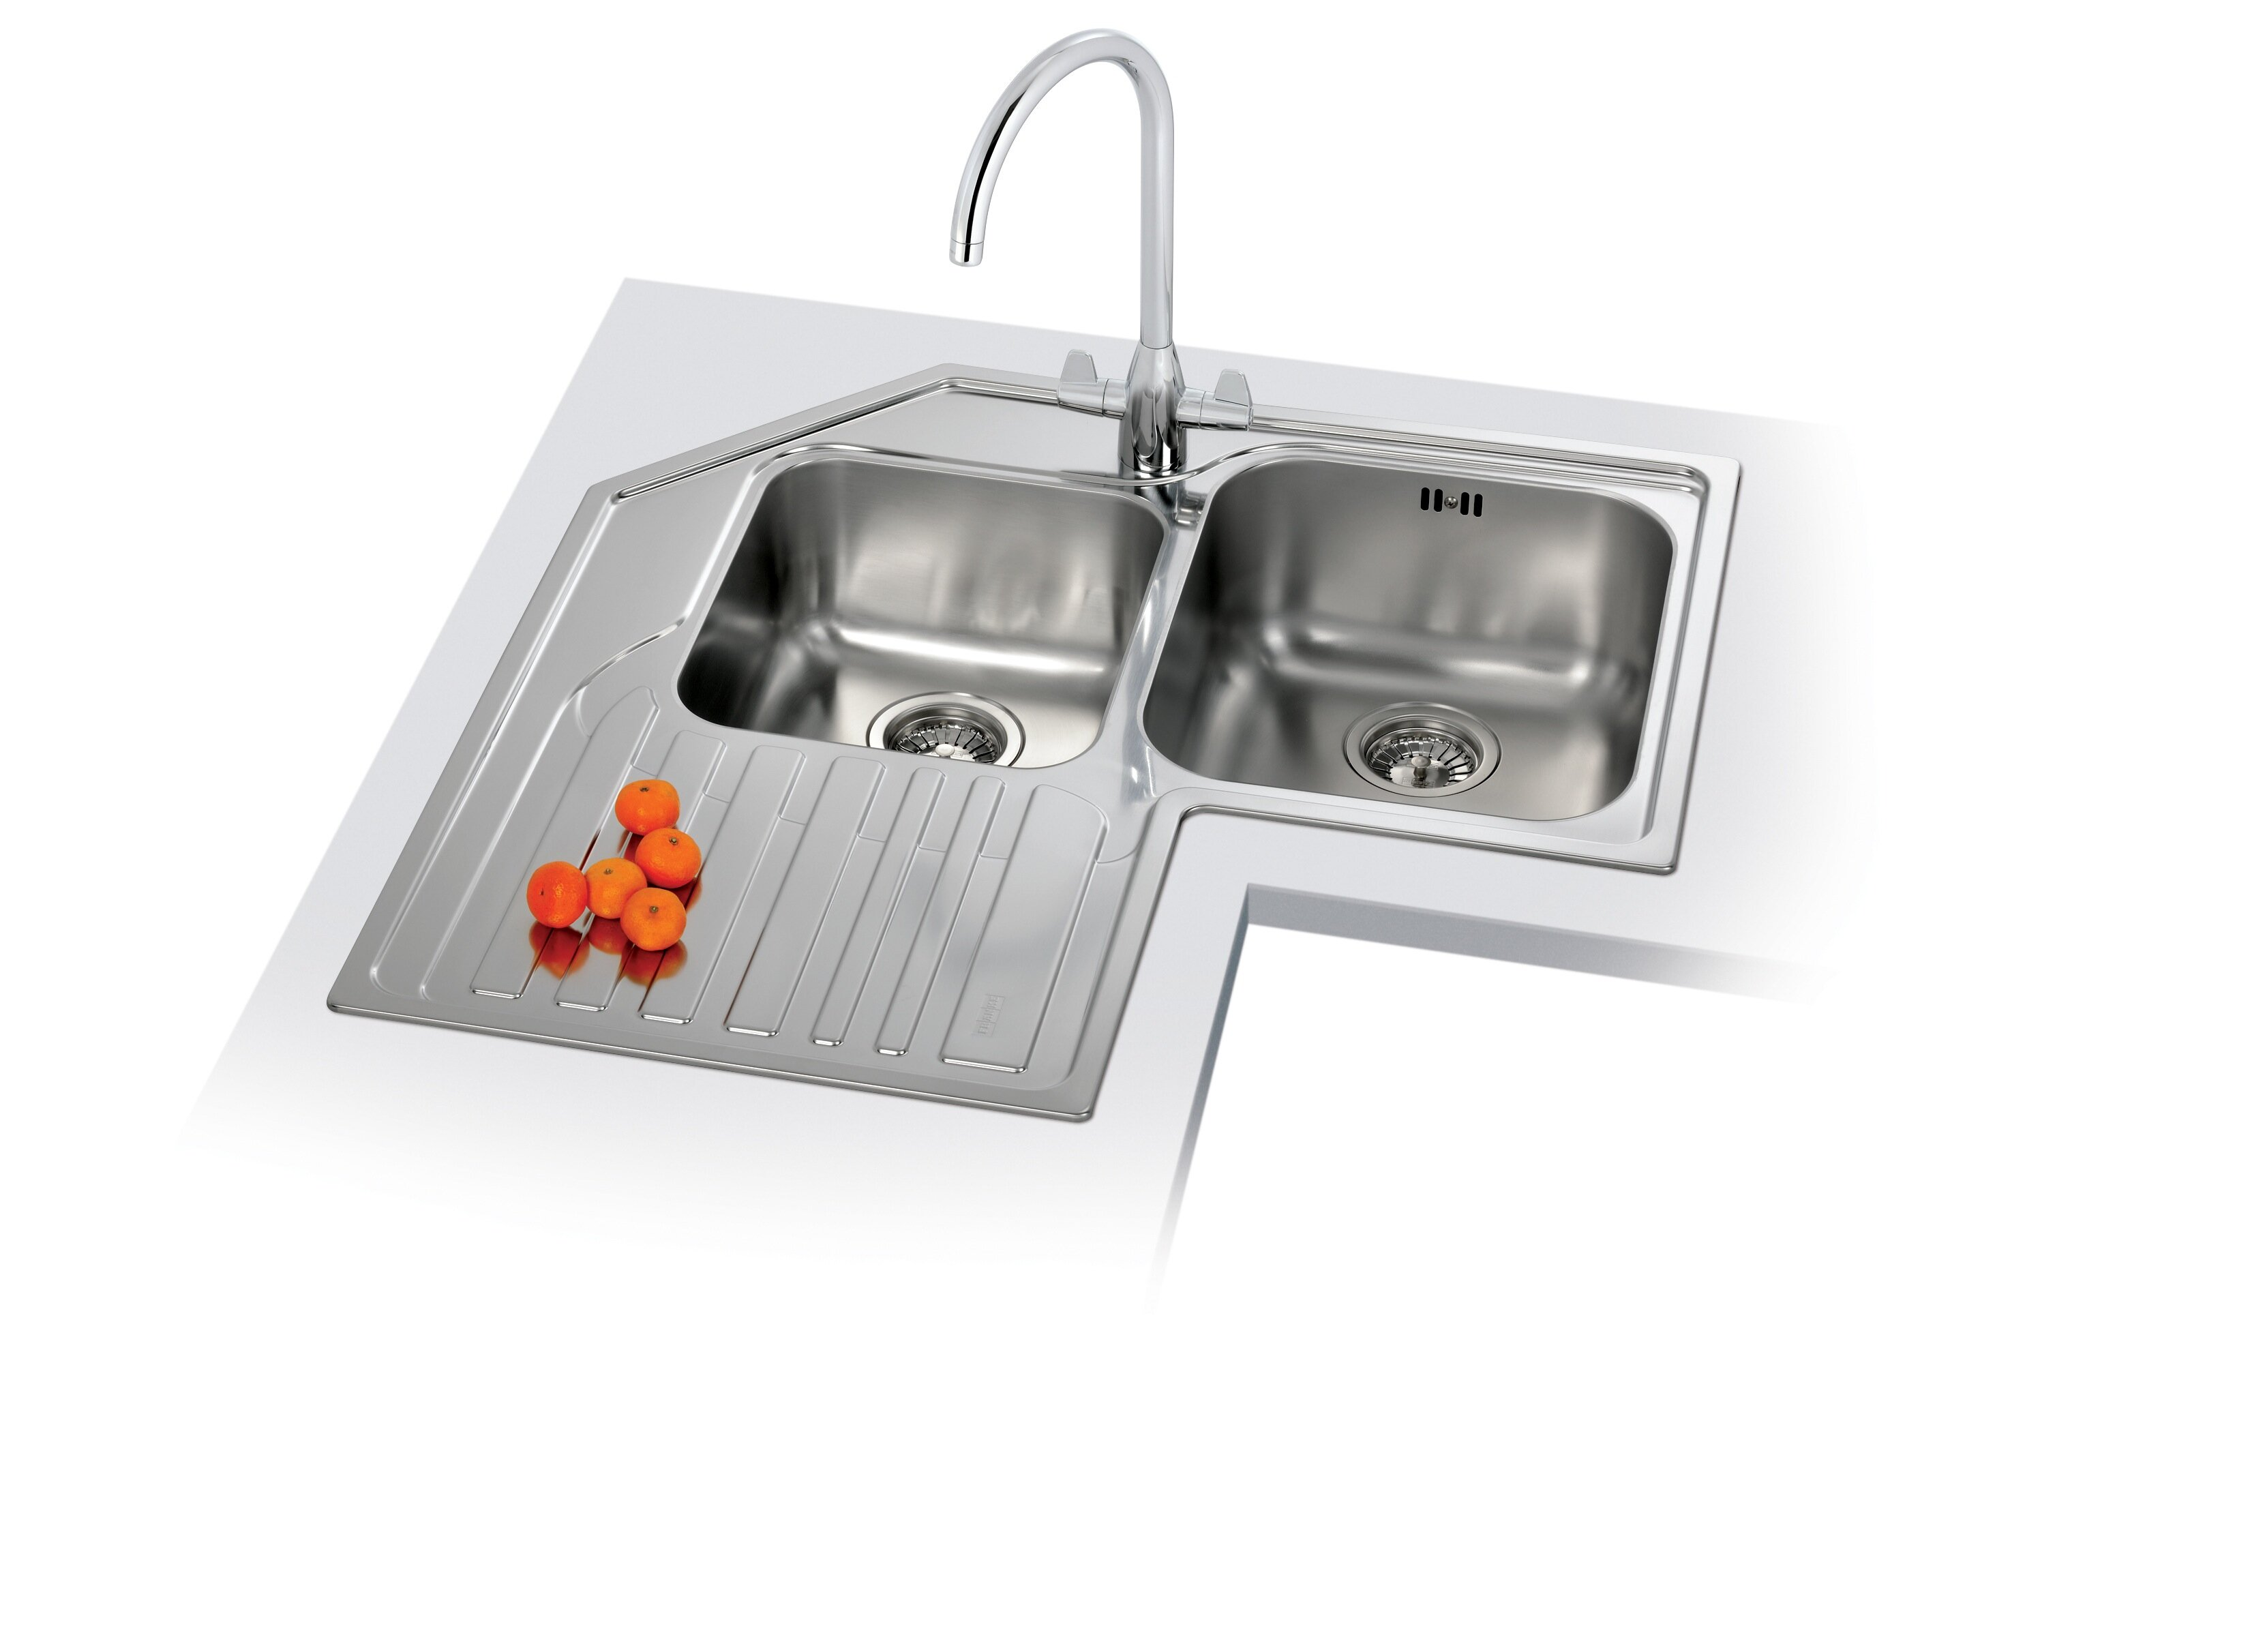 Kitchen Sinks Stainless Steel | Undermount Stainless Steel Kitchen Sink | Quality Stainless Steel Kitchen Sinks